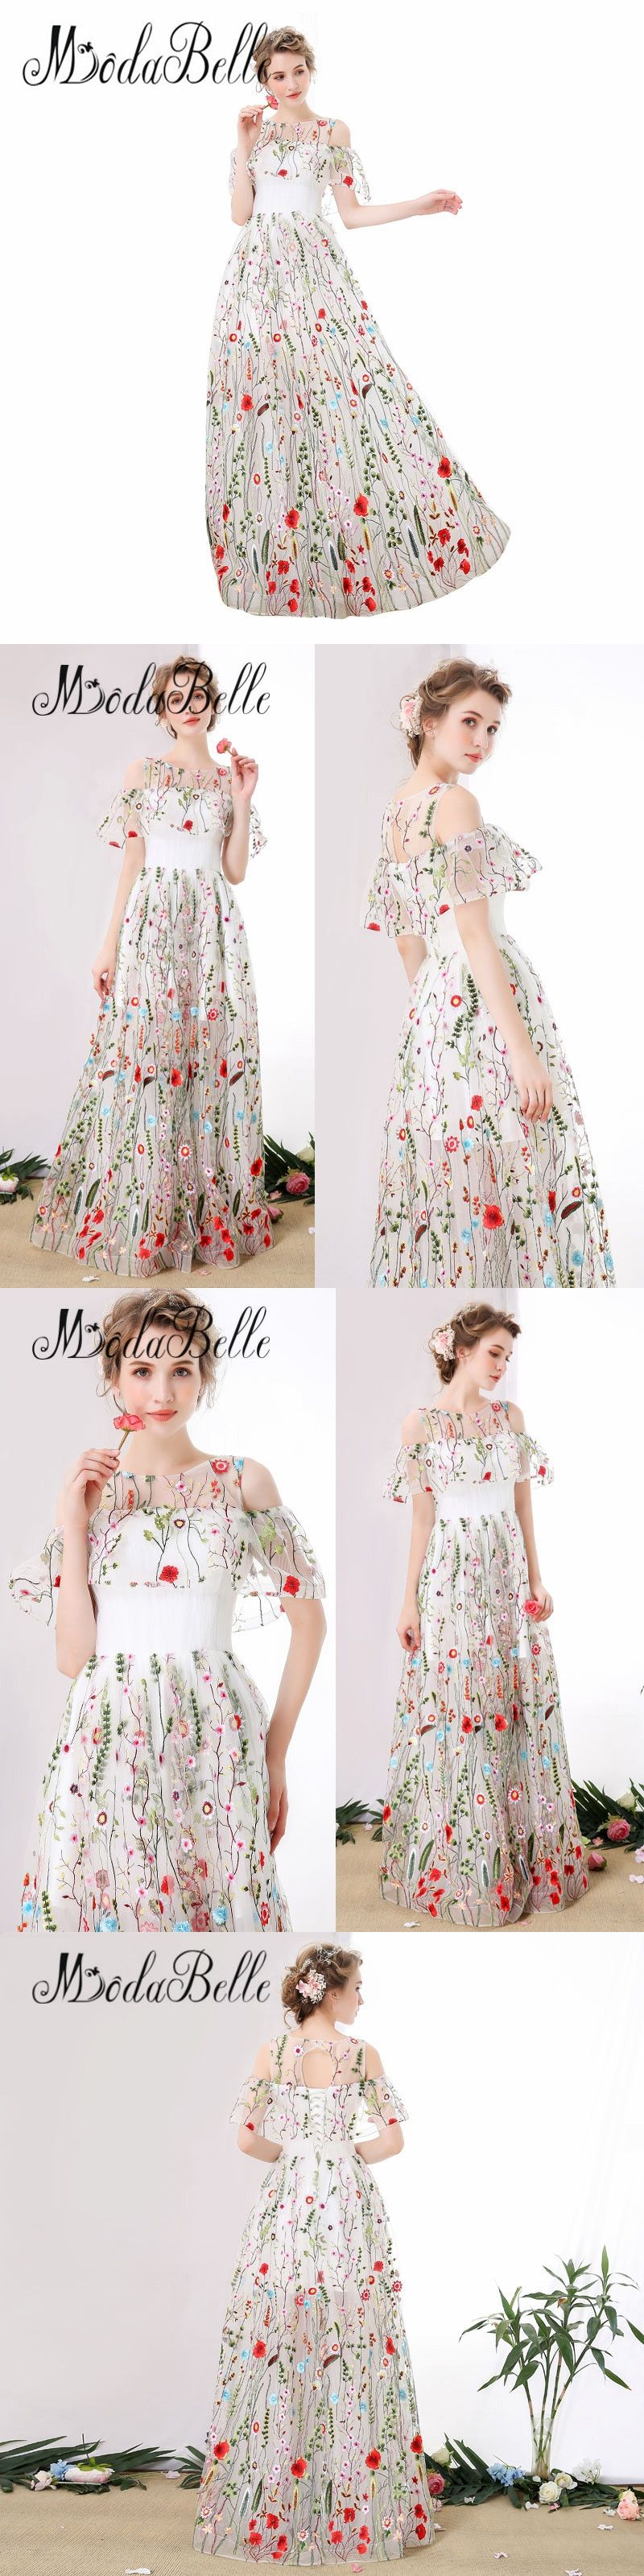 Modabelle tulle white long floral prom dress off shoulder floor